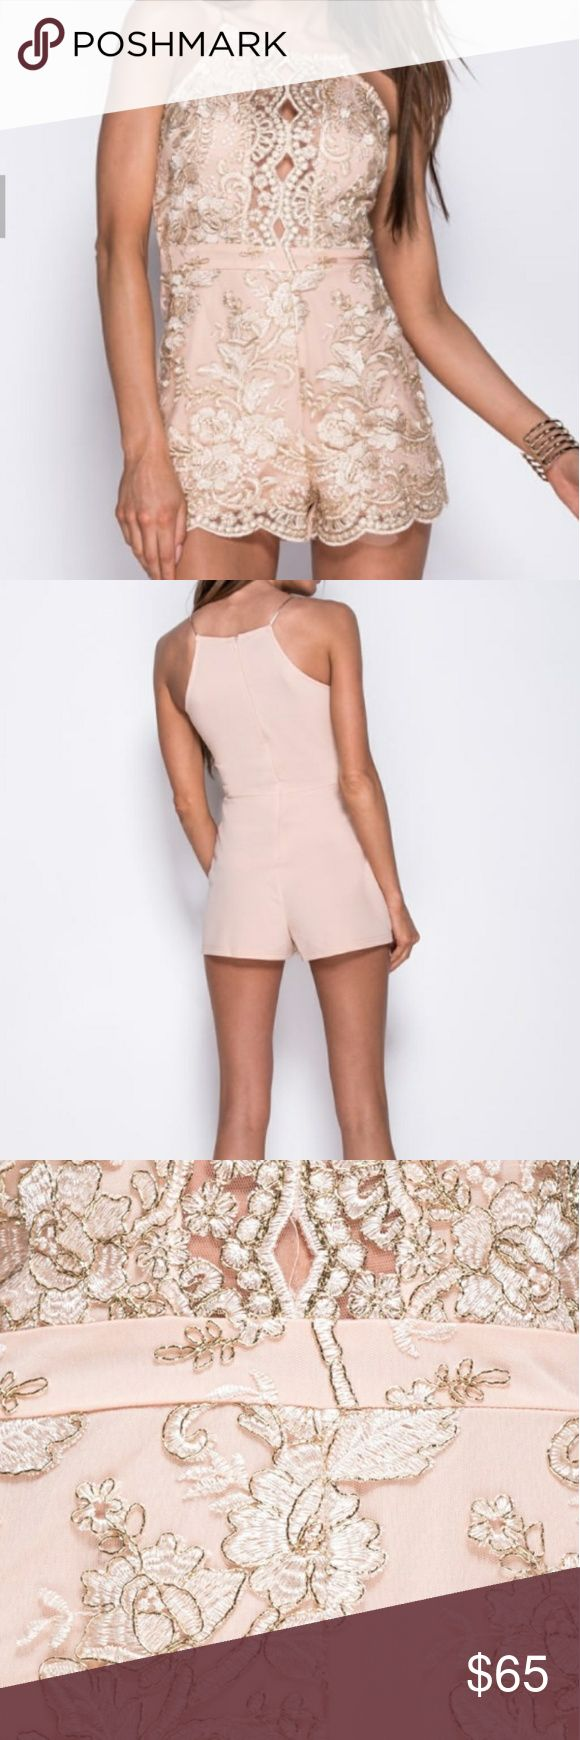 Pre-Order...Blush/gold lace playsuit(Romper) This is a very beautiful statement piece! Its a blush/gold playsuit! Dresses